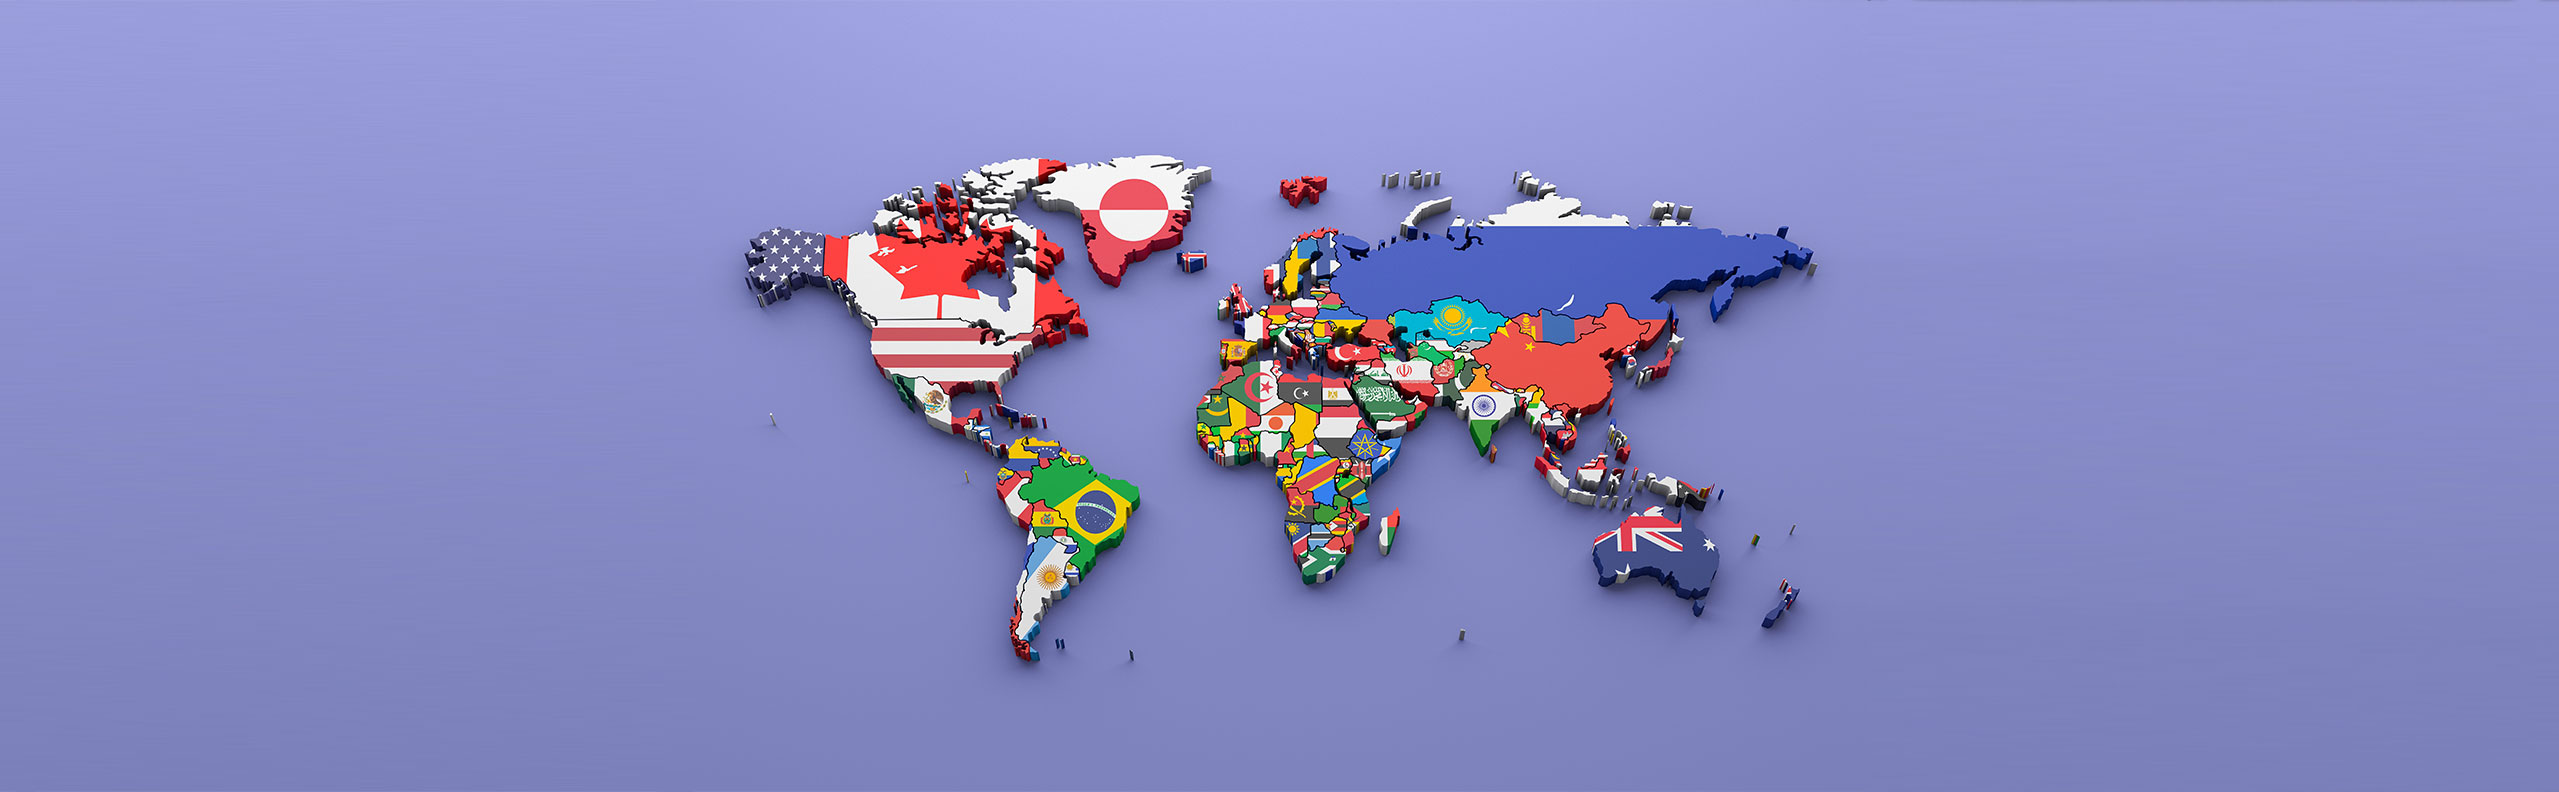 International Web Accessibility Laws and Policies